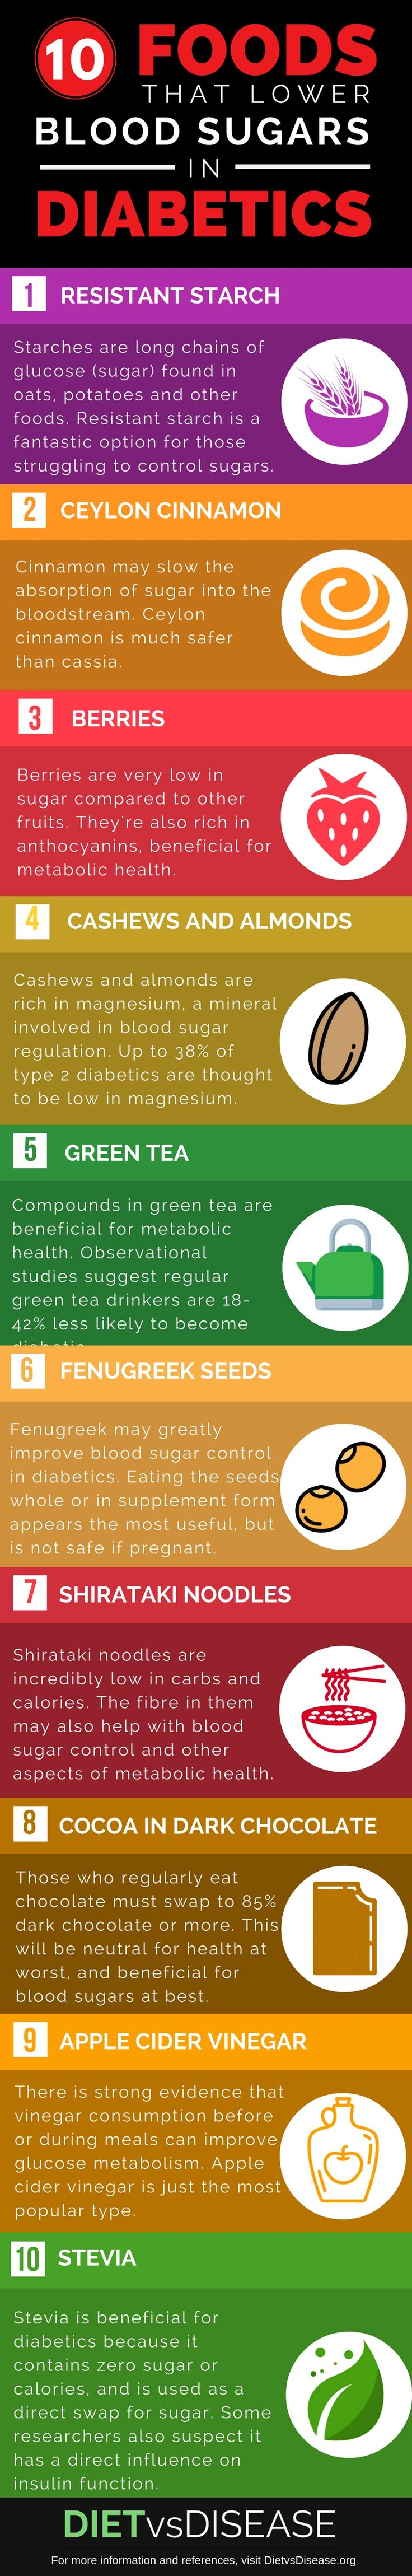 best foods to lower blood sugar fast